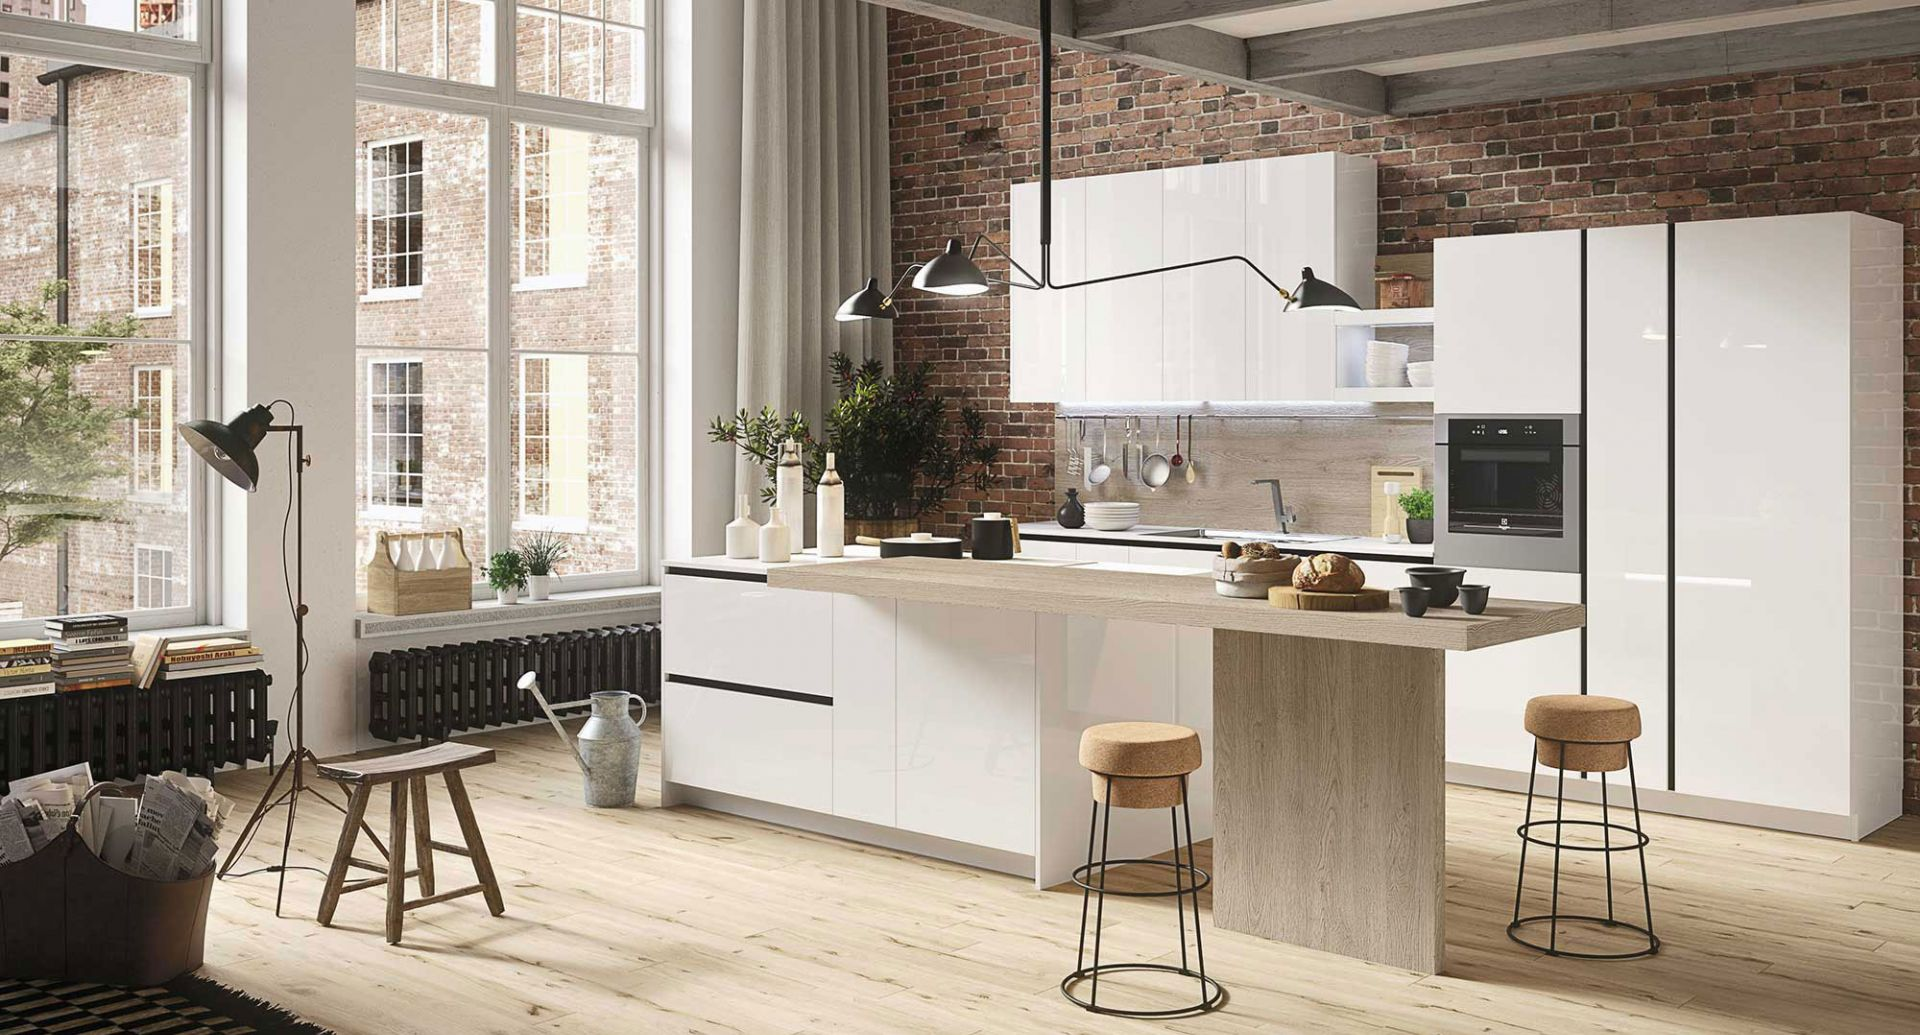 Modern kitchens accessible prices Snaidero - First